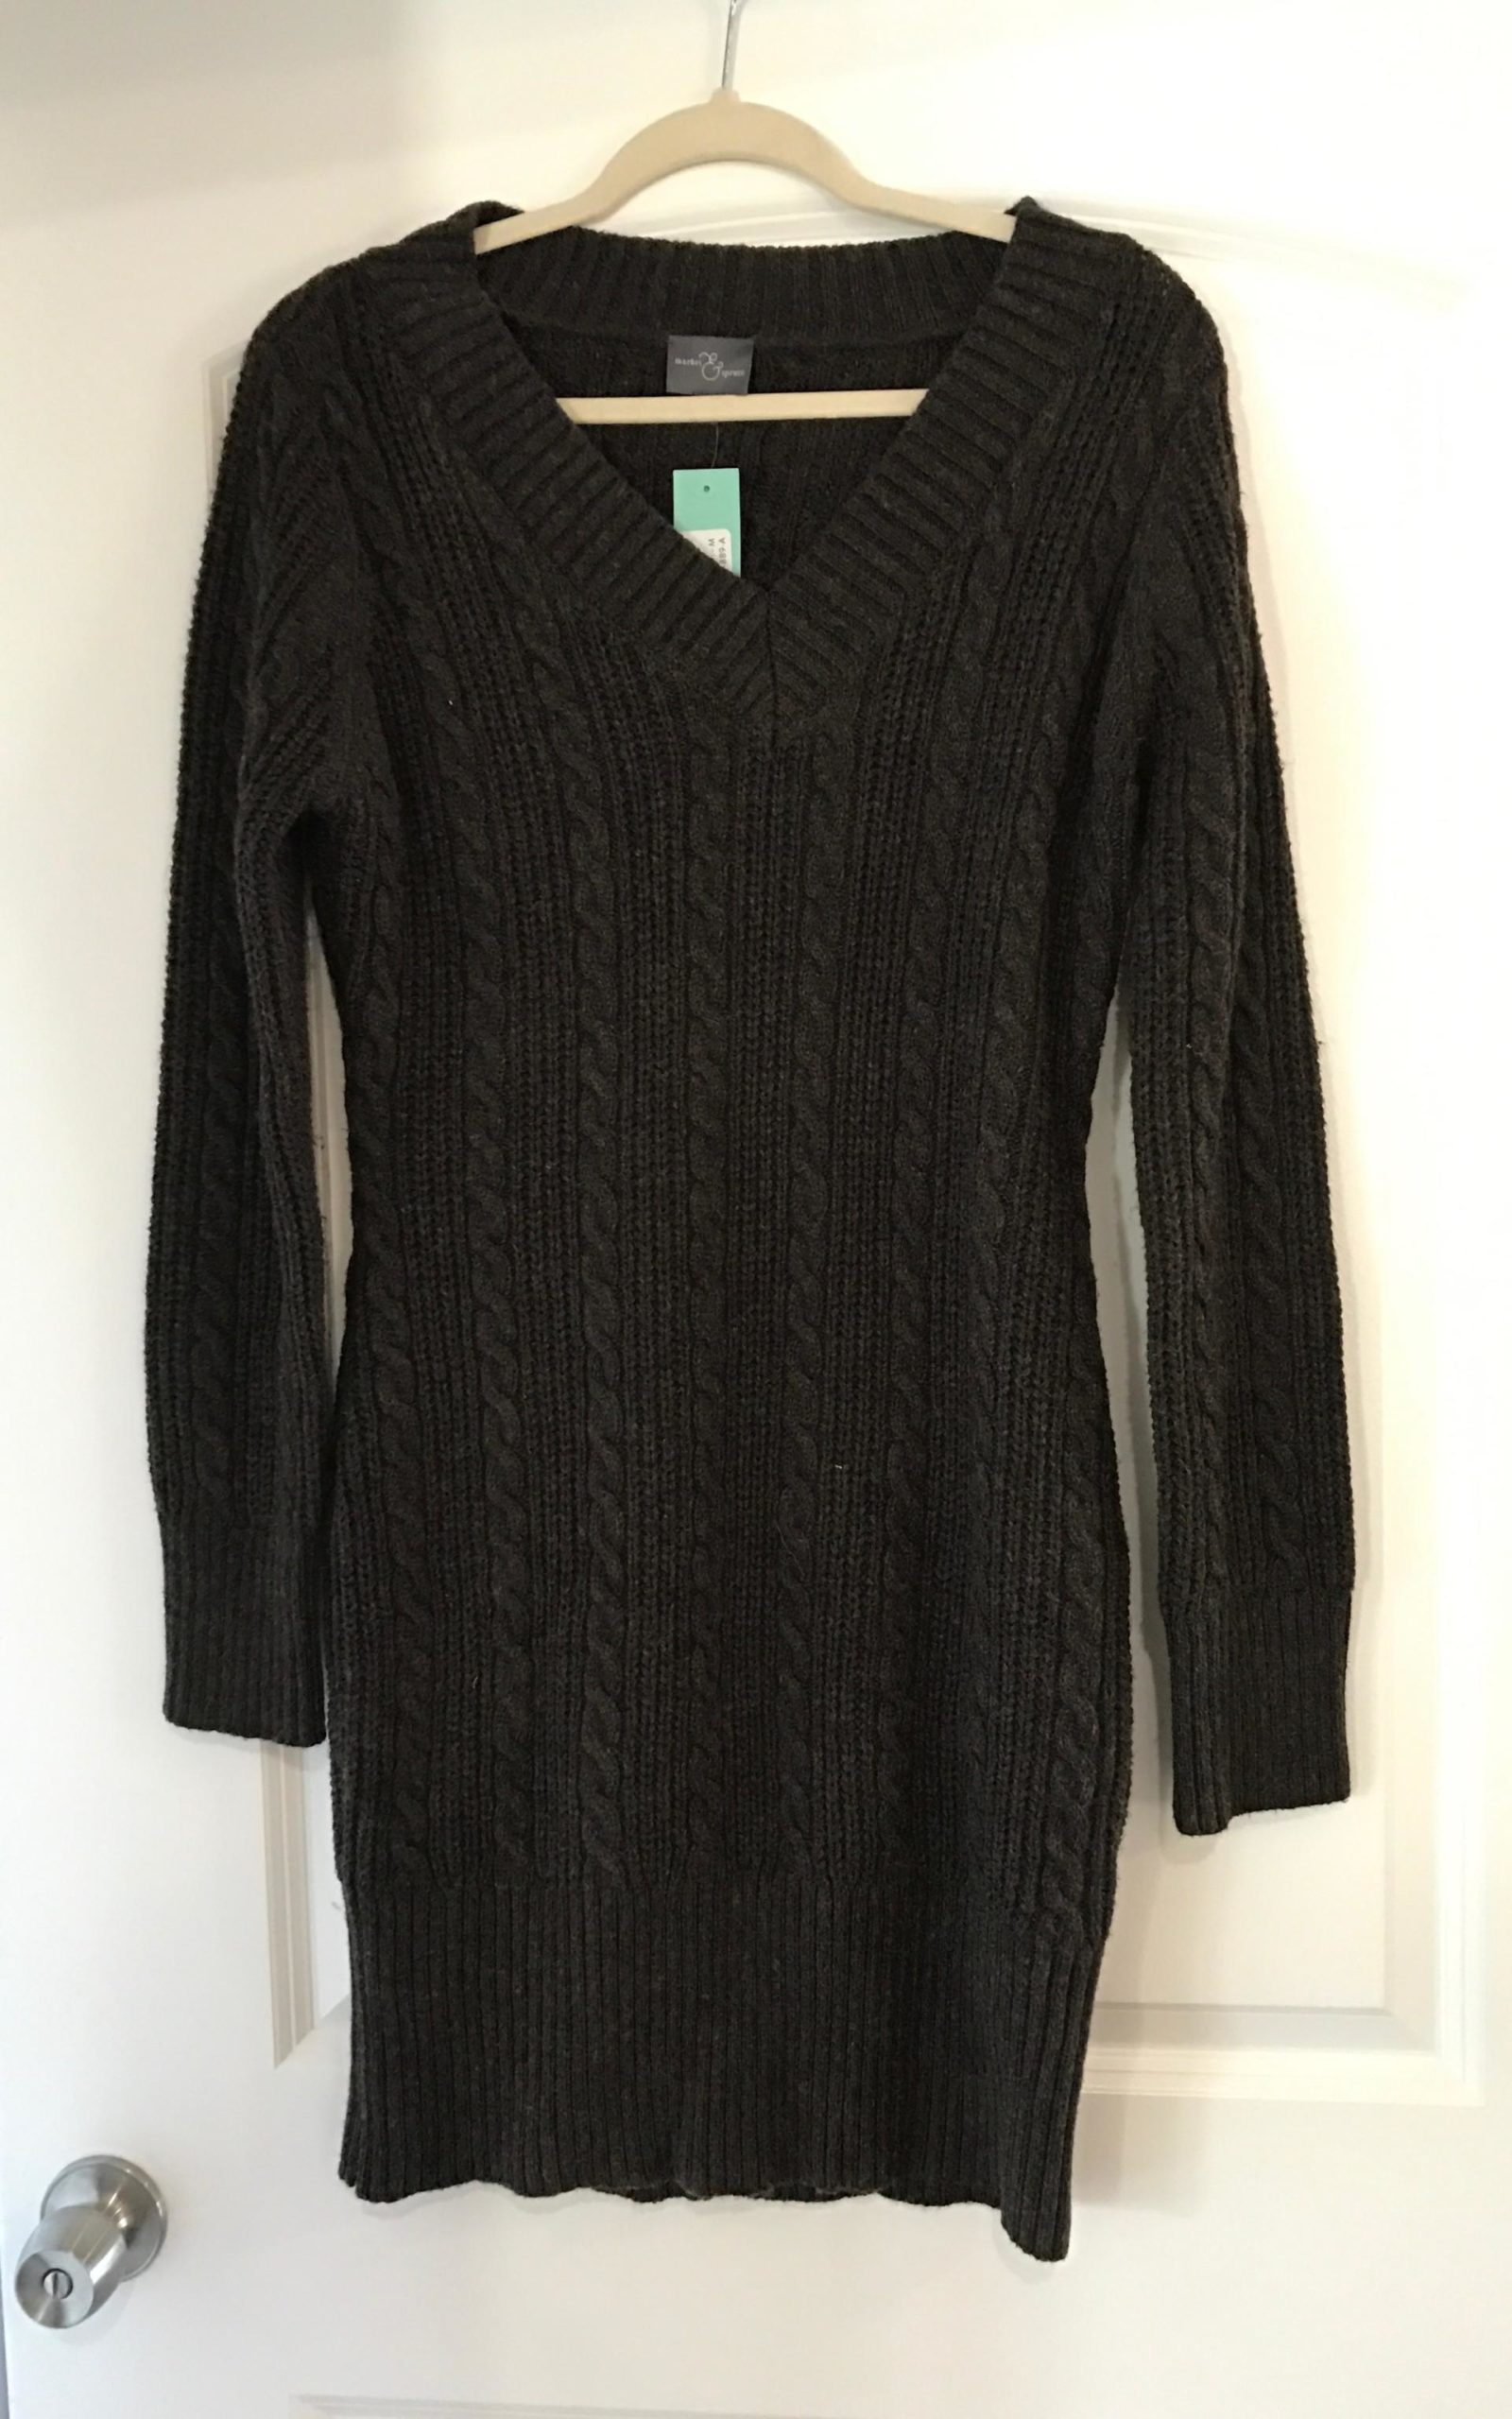 market-spruce-merideth-sweater-dress